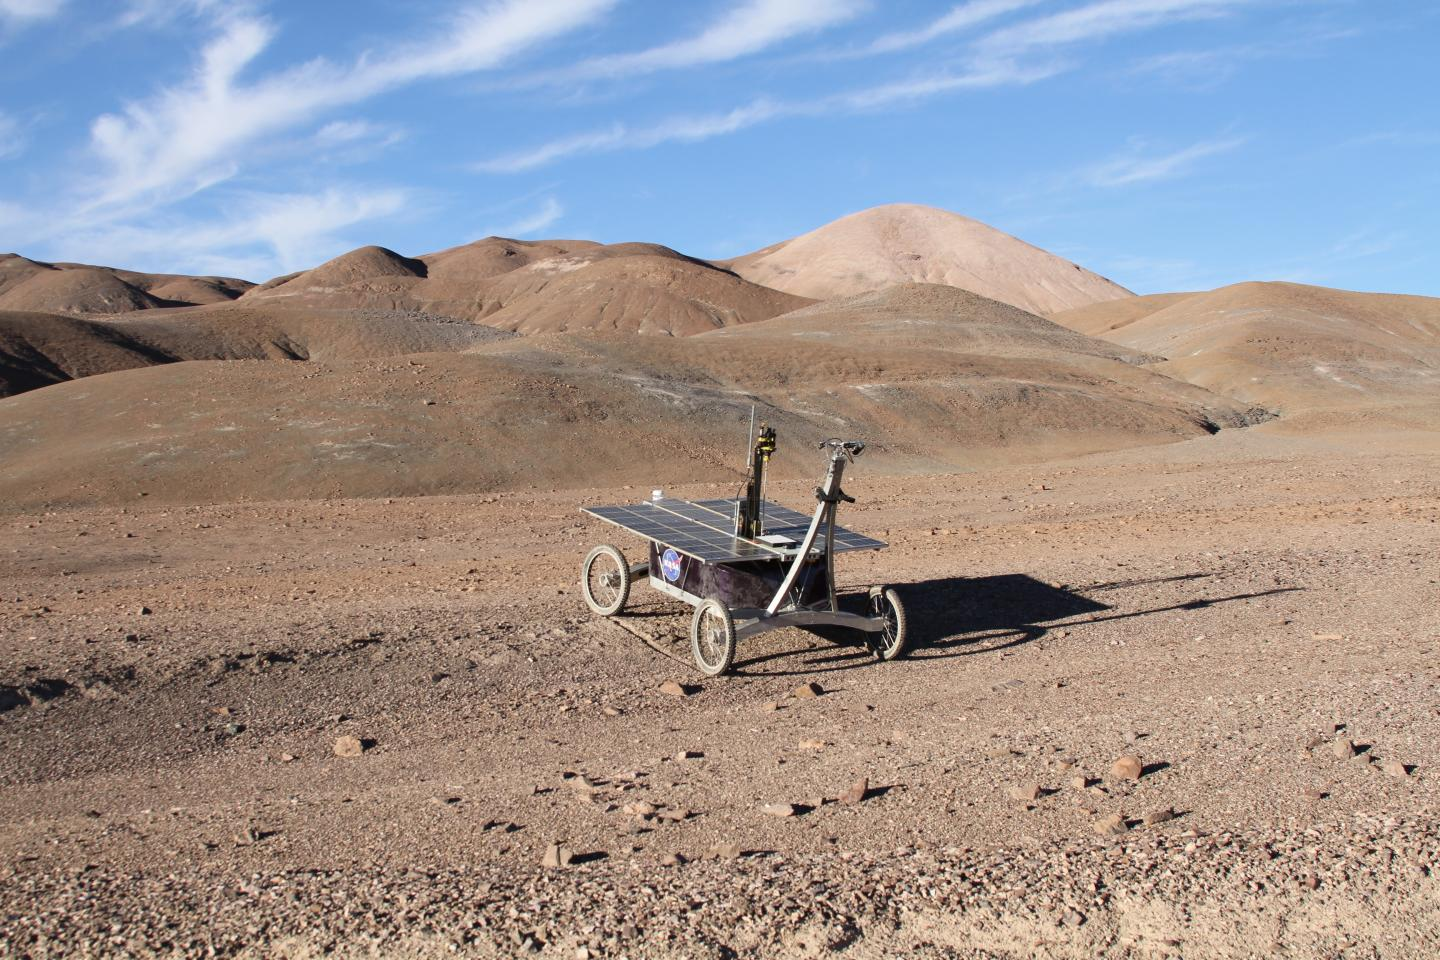 Mars Rover (3 of 3)